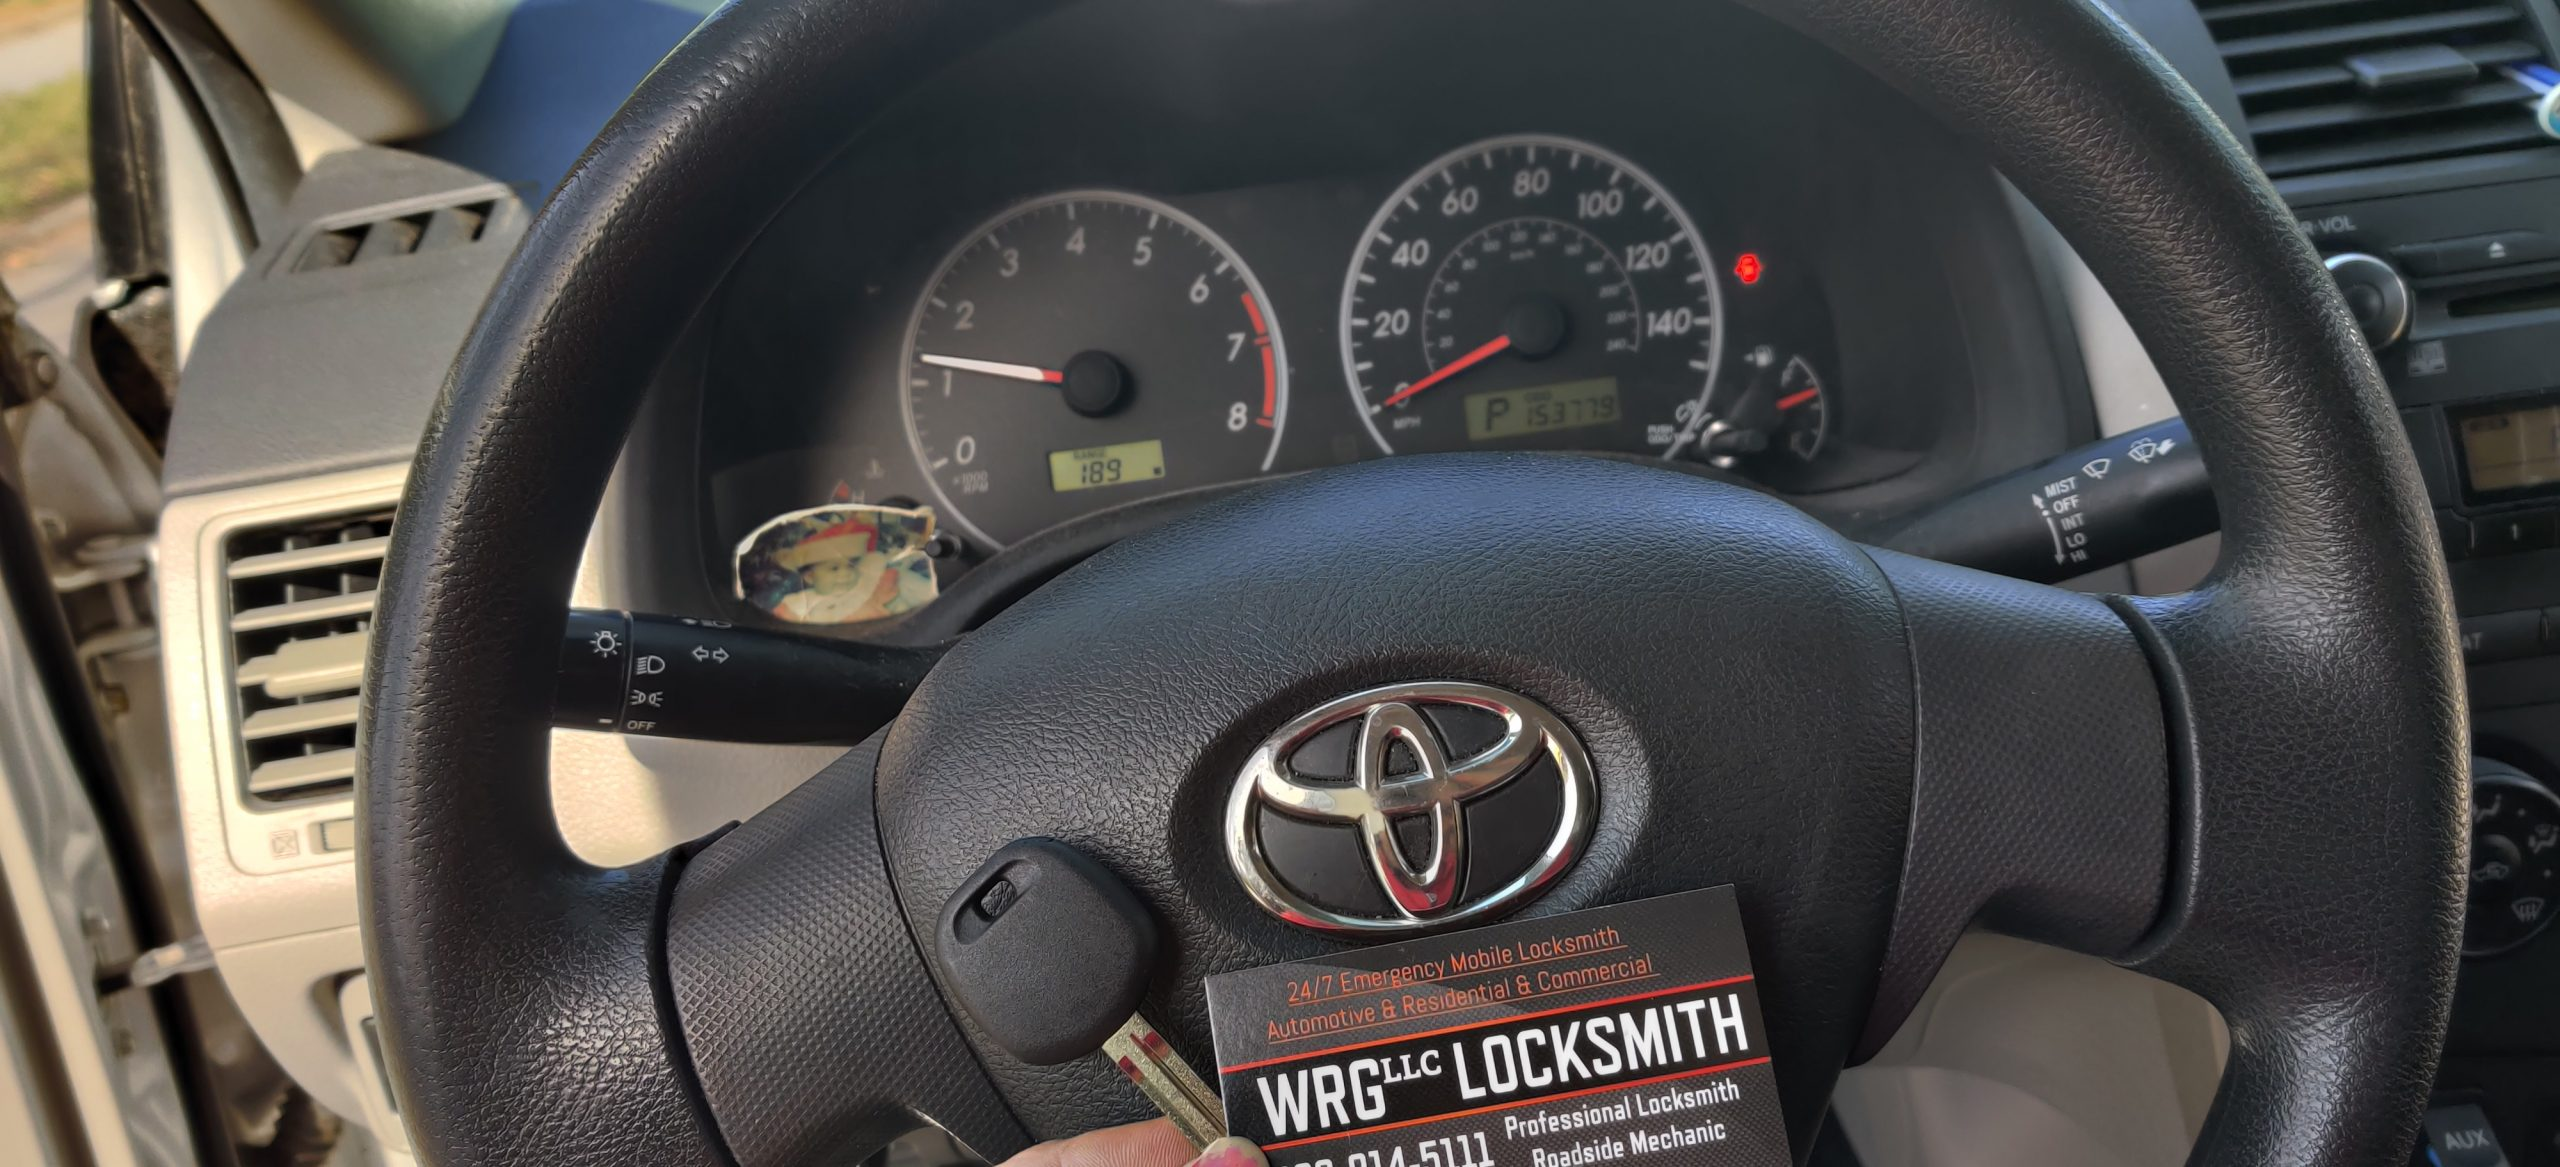 WRG LLC Locksmith & Mechanic